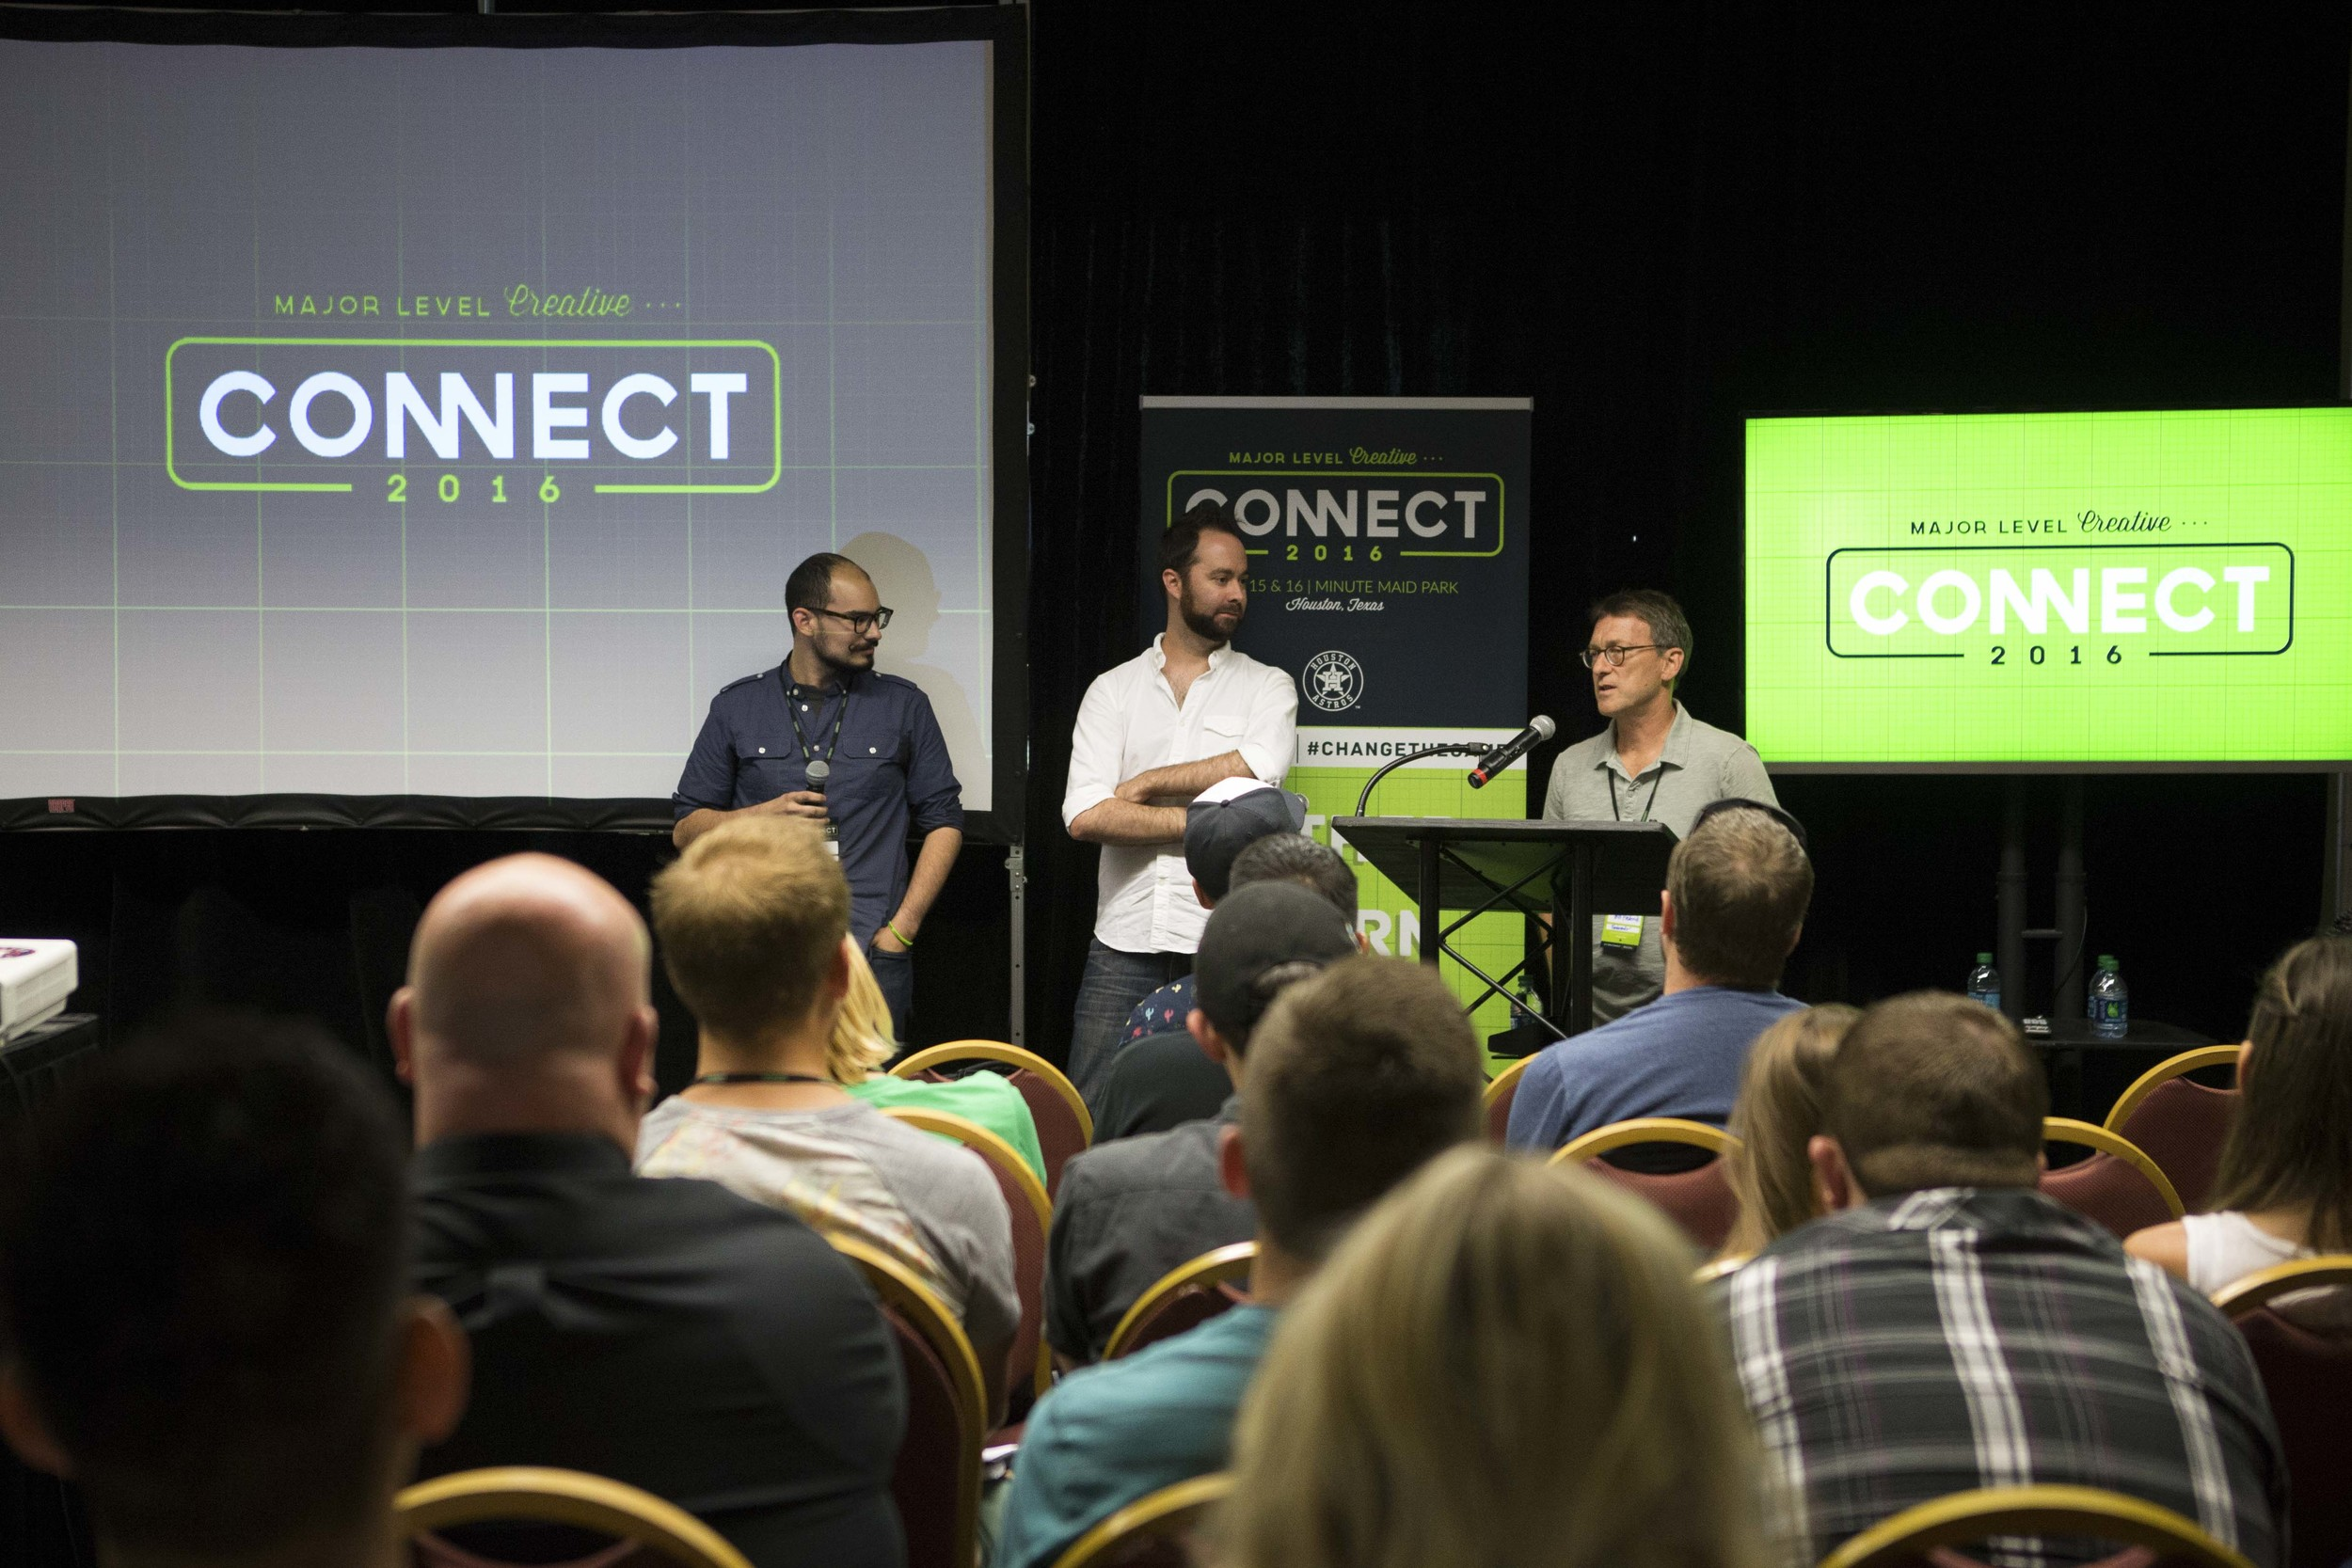 Connect_26010-wr.jpg